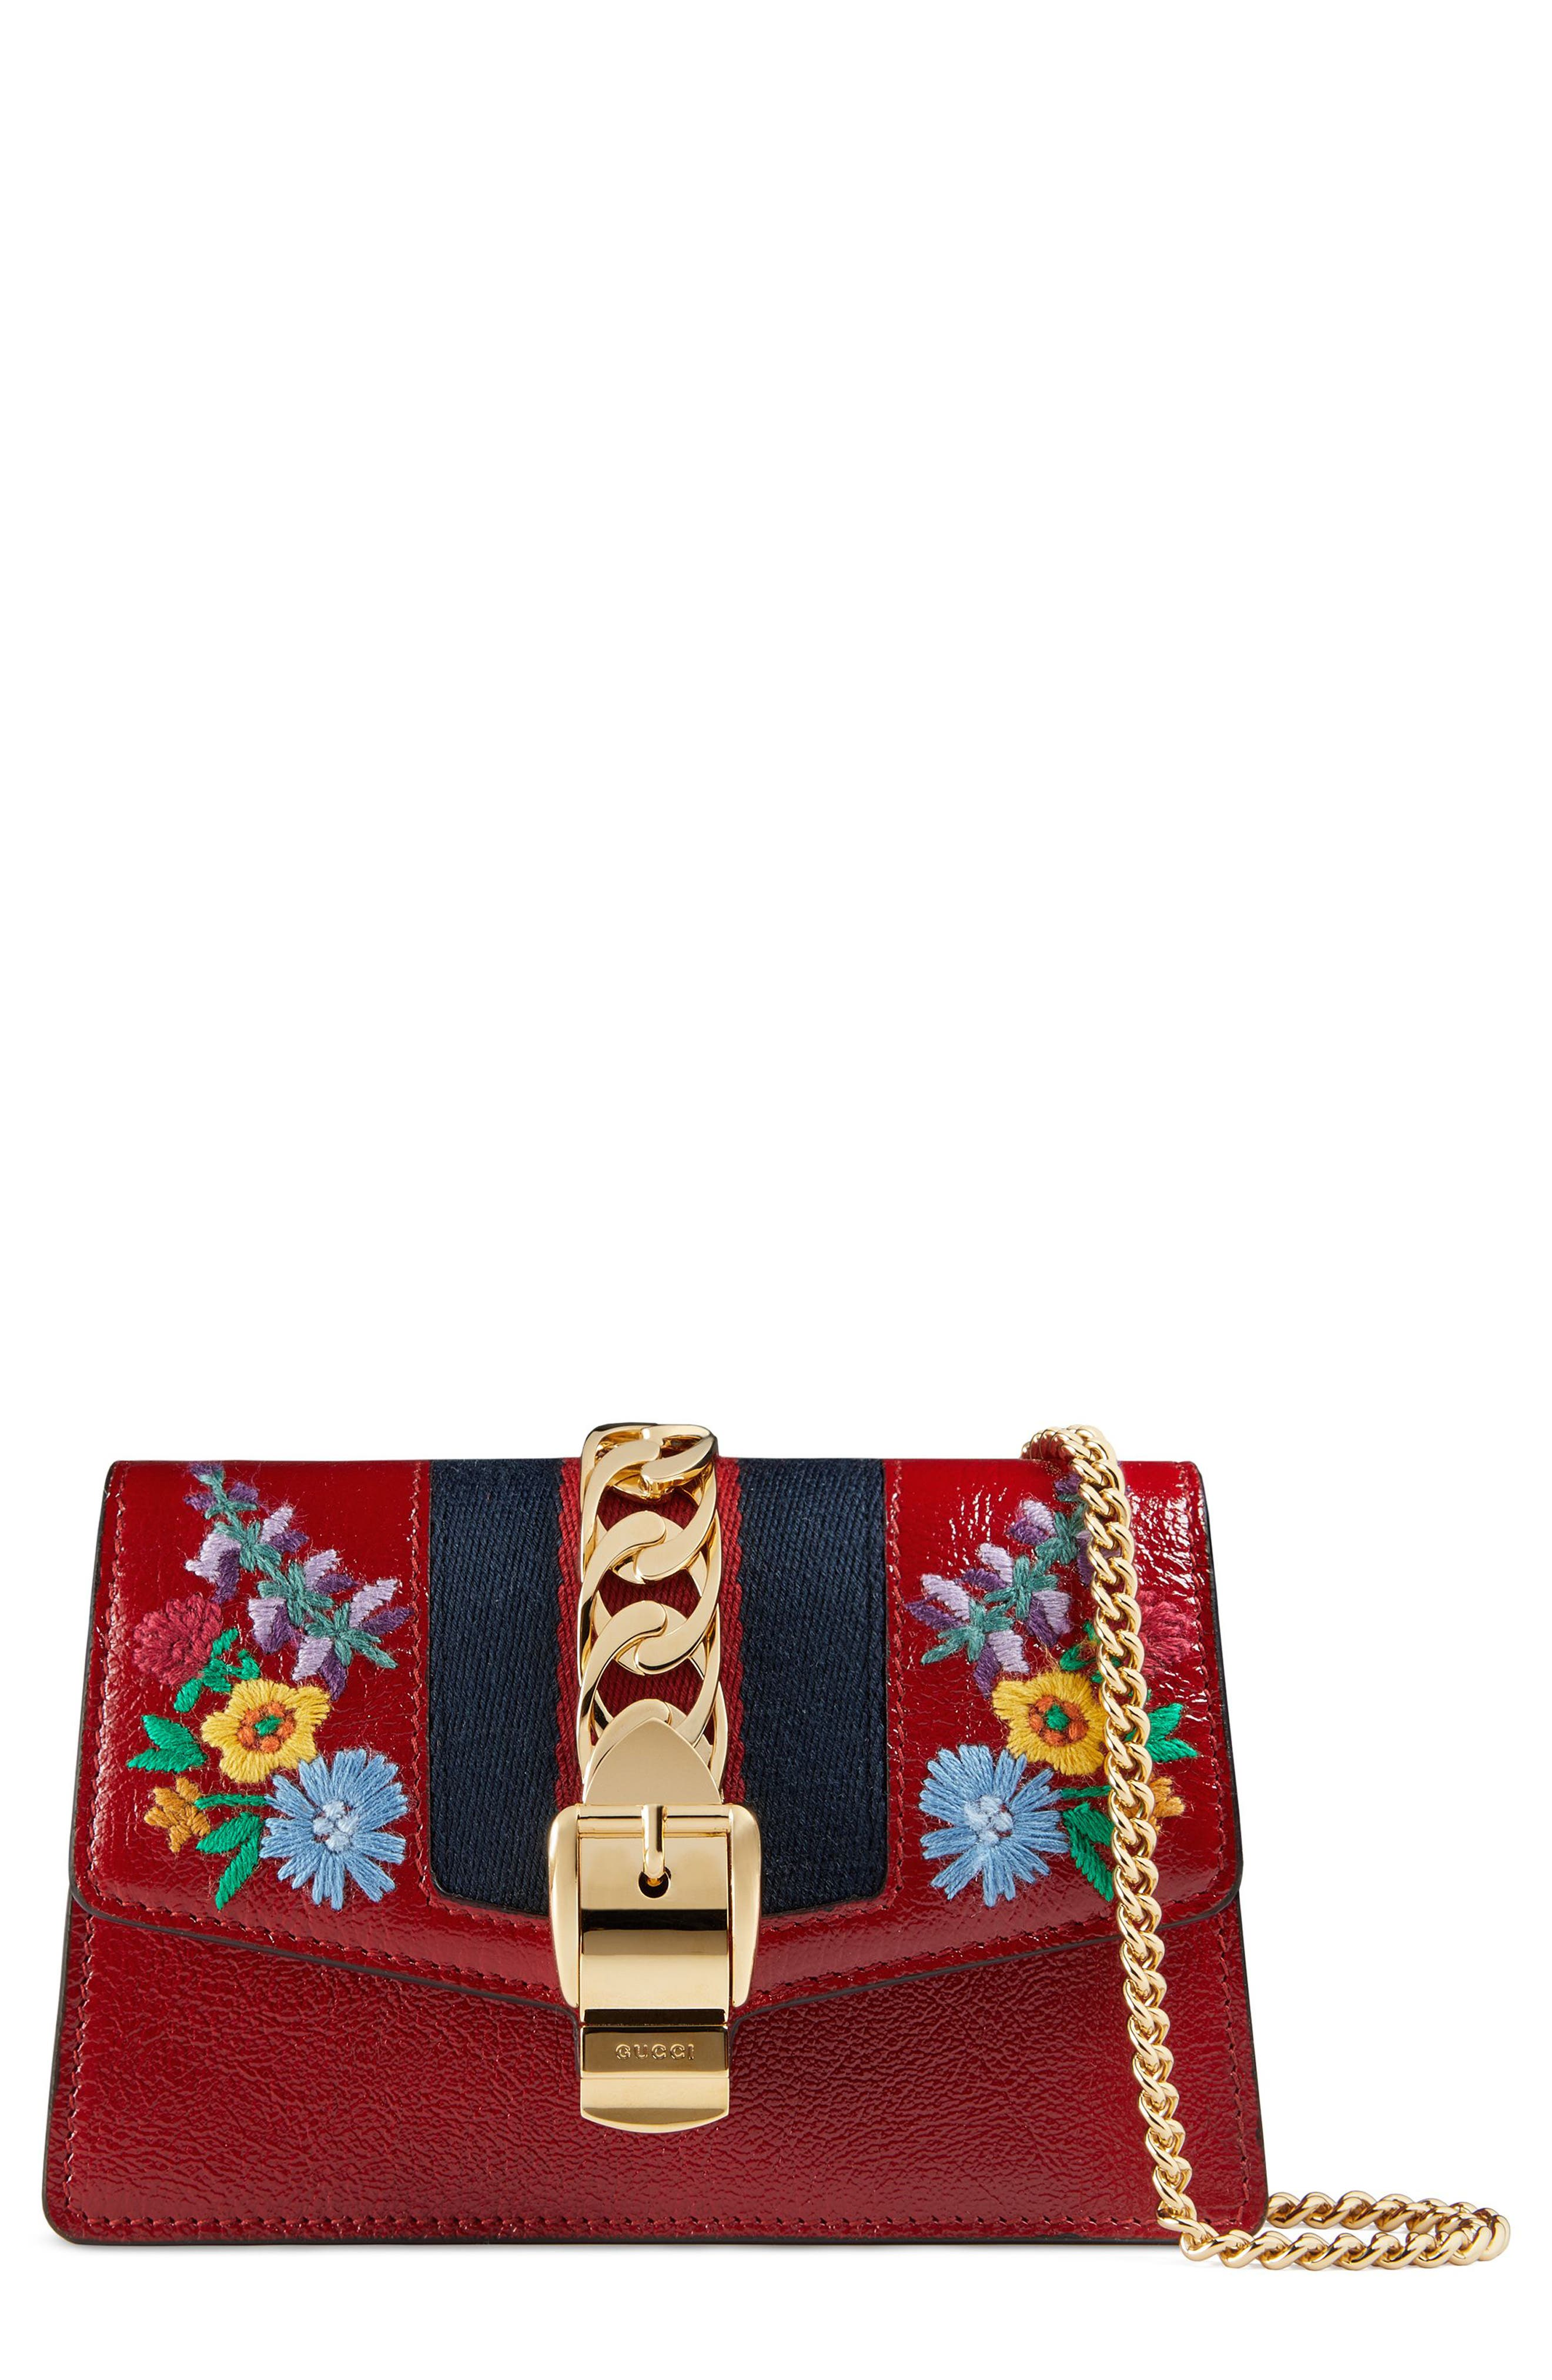 Super Mini Sylvie Embroidered Chain Wallet with Hook,                             Main thumbnail 1, color,                             HIBISCUS RED MULTI/ BLUE